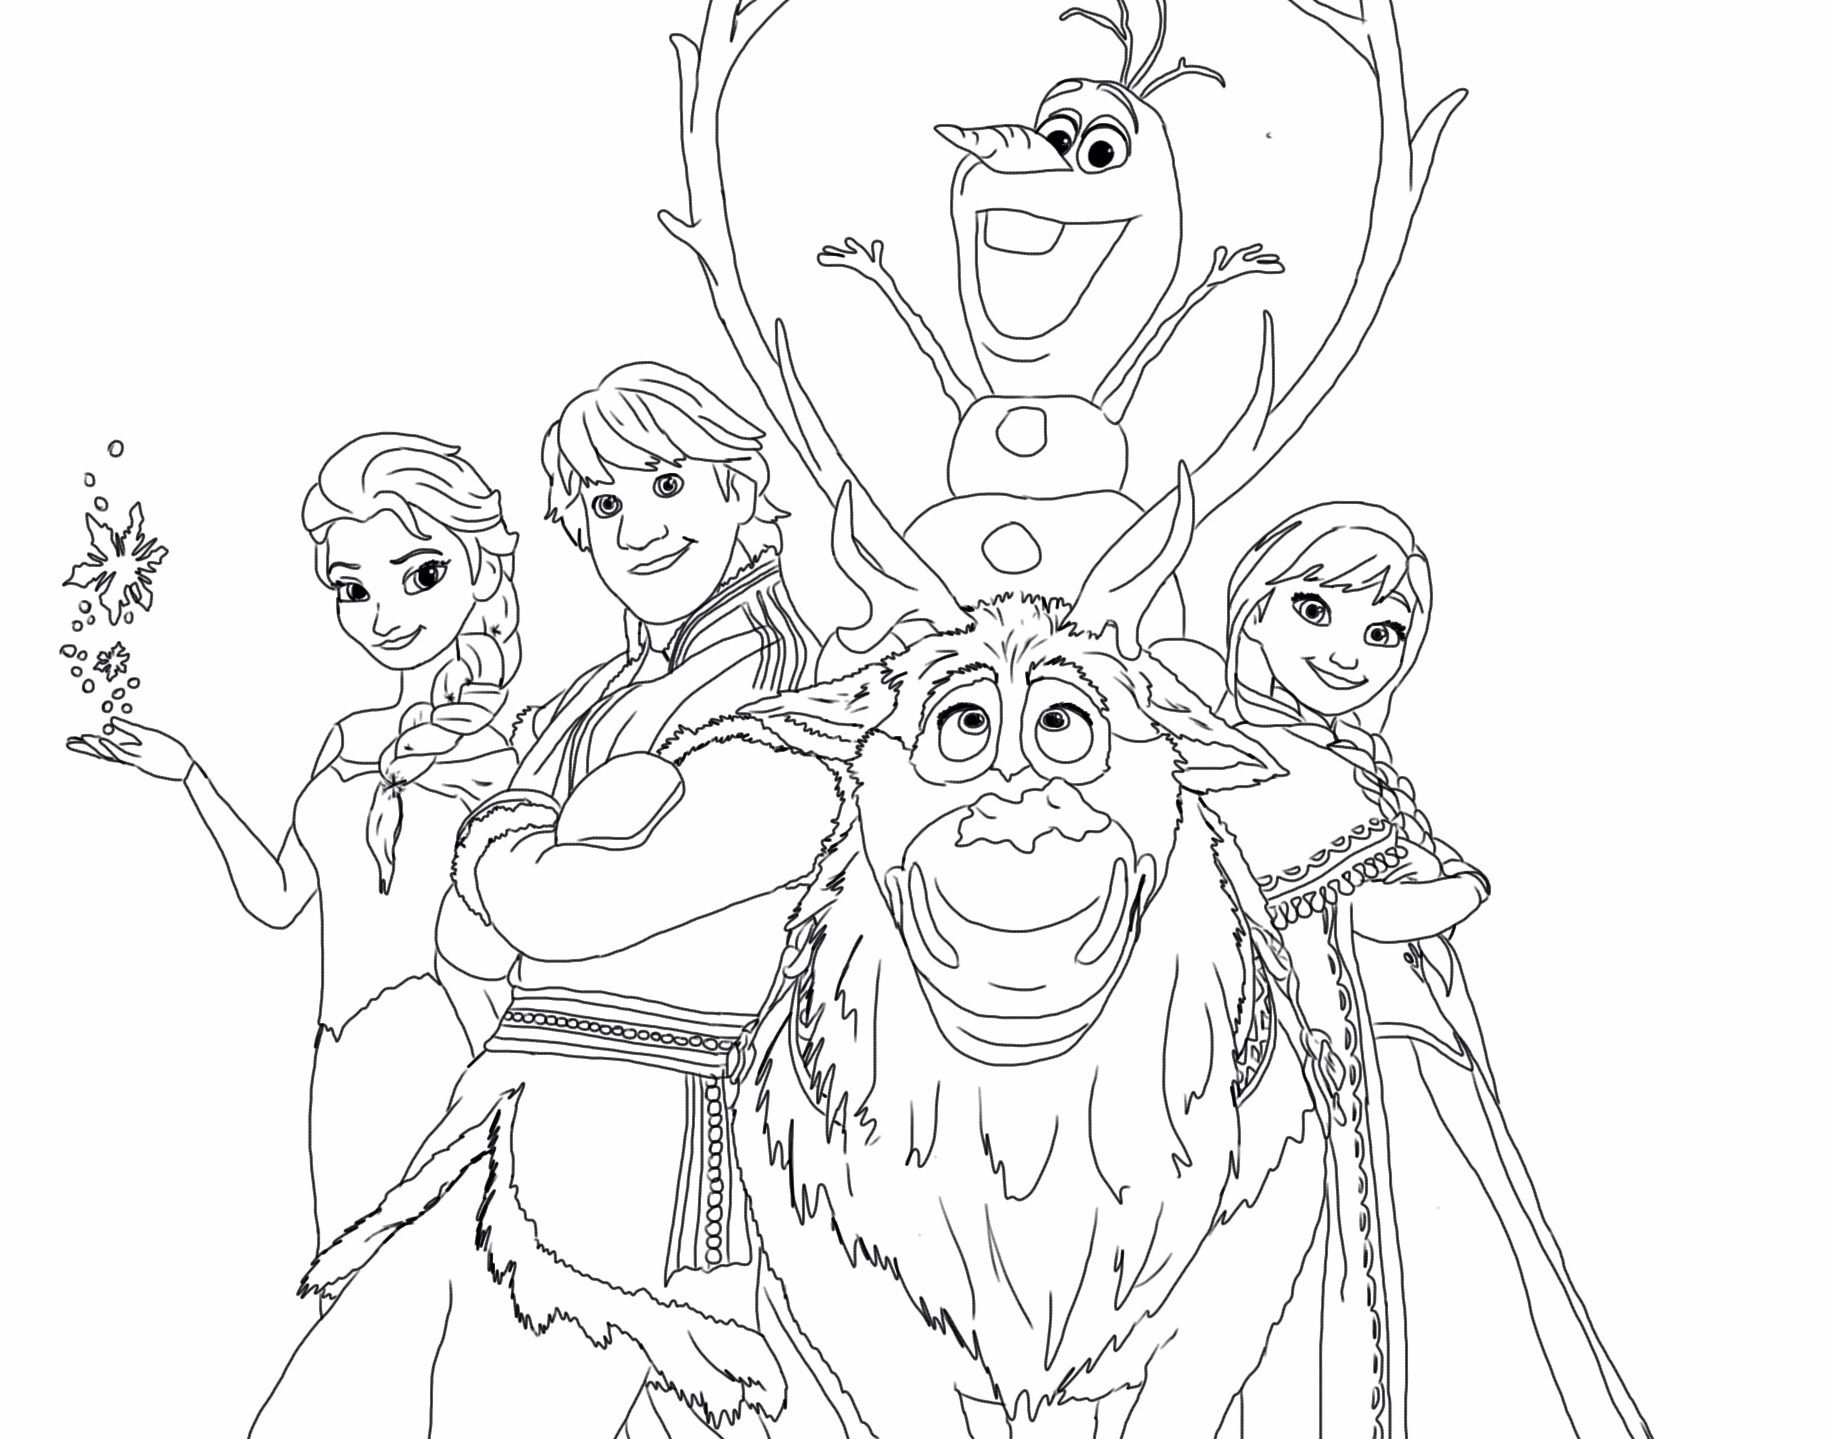 coloring page of frozen characters my free pages - Frozen Printable Coloring Pages